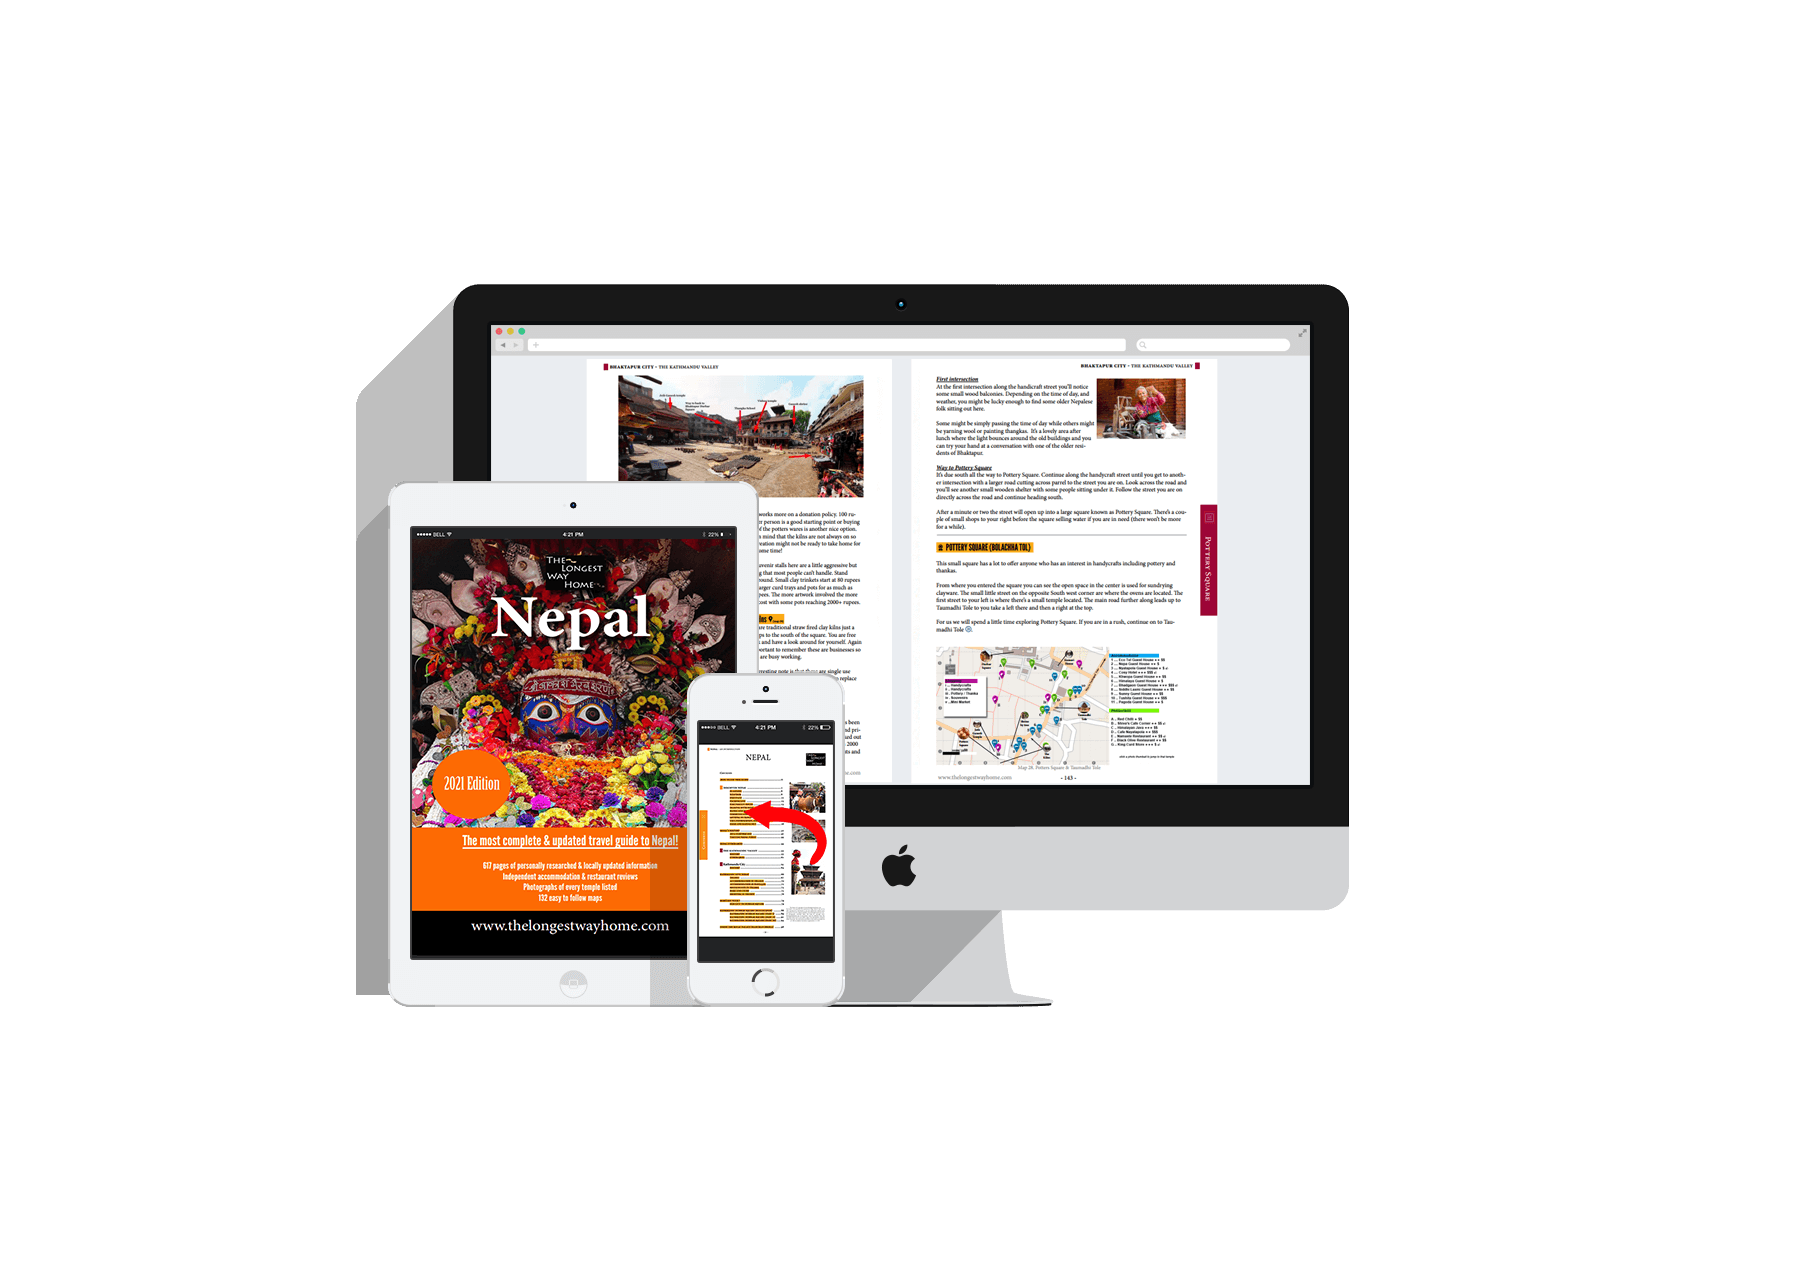 Nepal guidebook shown on a large monitor, tablet and mobile screens